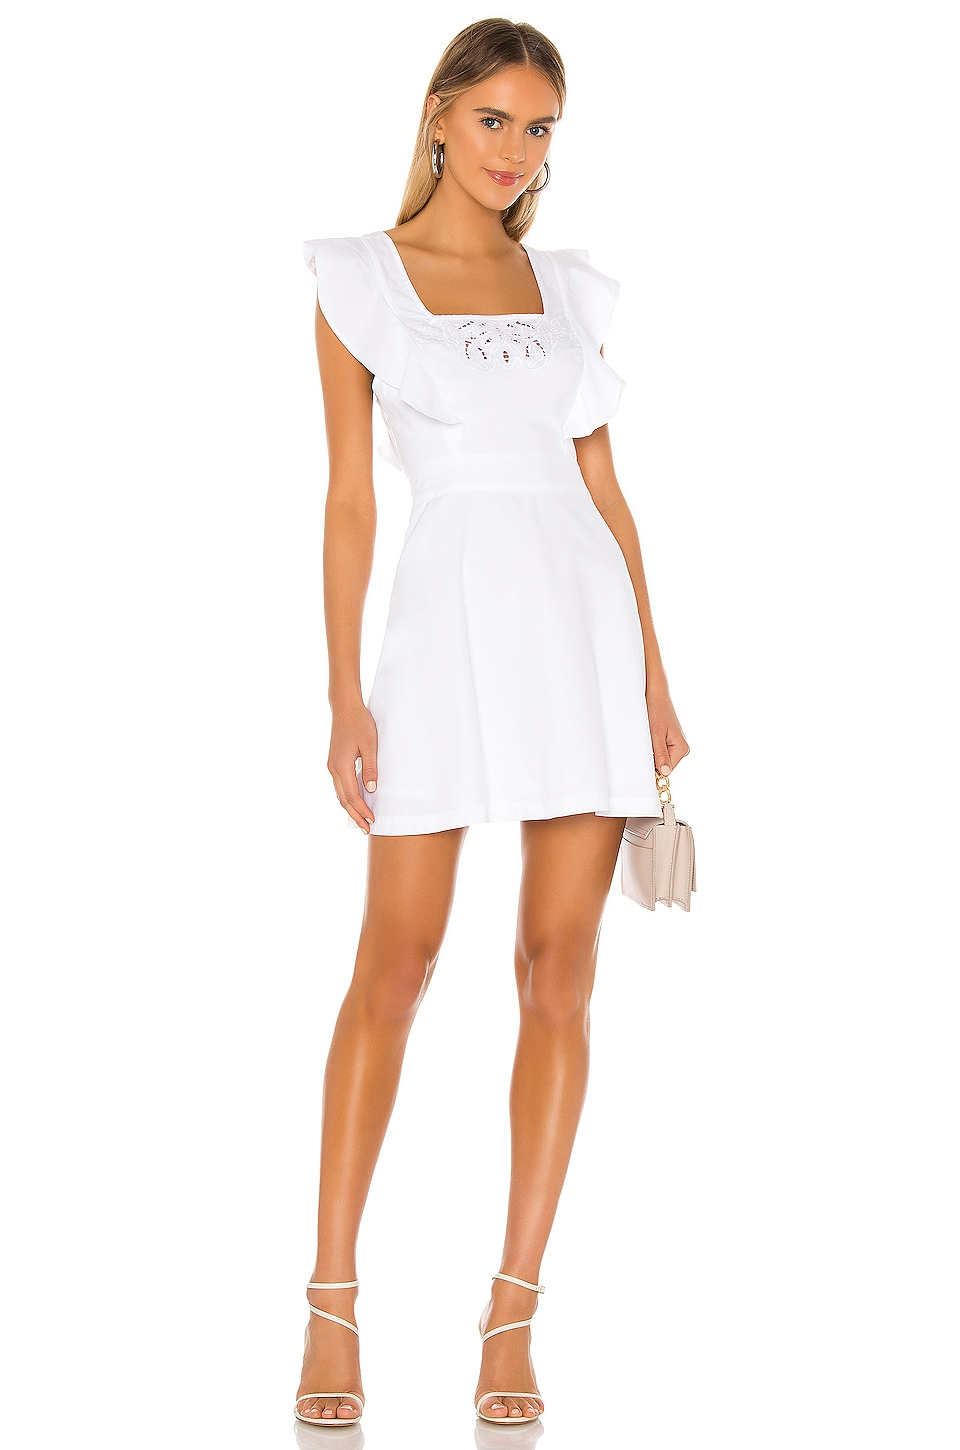 Tie Back Dress             BCBGeneration                                                                                                       CA$ 162.65 6